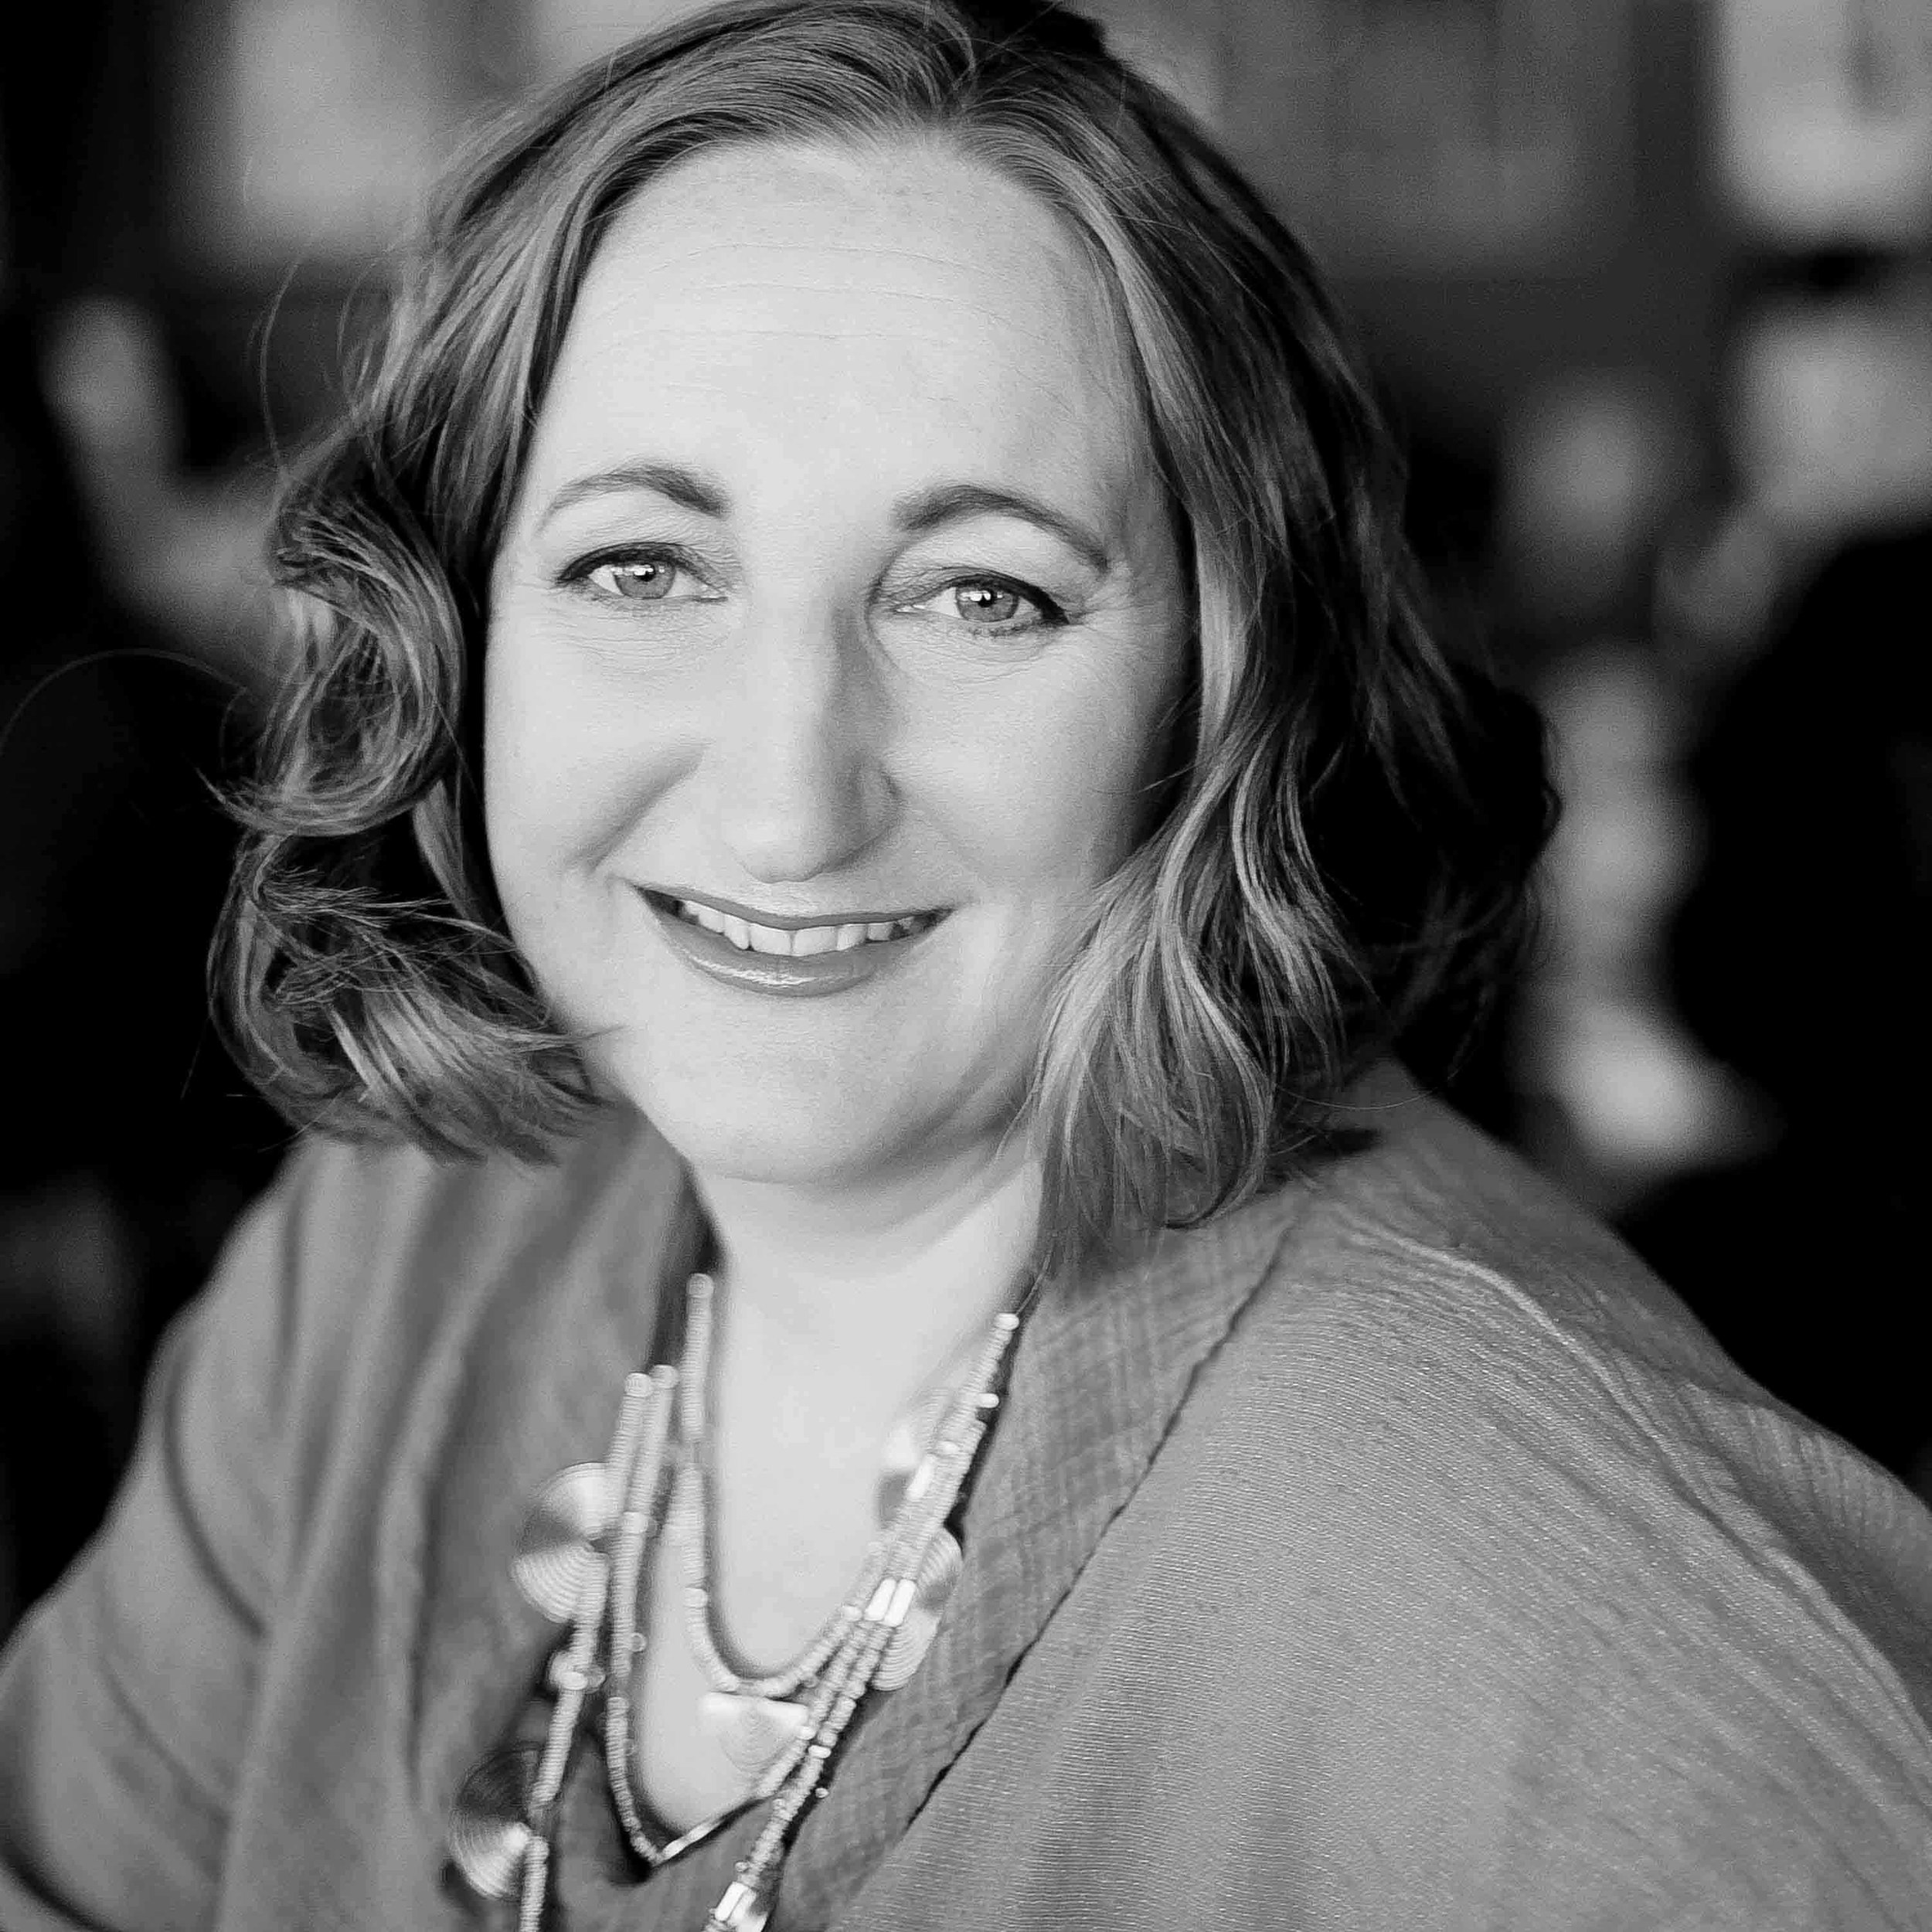 Hi, I'm Tamsin Acheson - I am passionate about ALL things growth, learning and development - life and business - especially YOURS! You can expect me to care as much about your personal and professional success, as you do. When you work with me I commit 100% of my energy, expertise, enthusiasm and experience to the development of your business skills, acumen and mindset, helping you to identify exactly what you need to do in order to achieve the results you desire whether you are in the start up, step up or scale up phase of business. I bring a unique blend of passion, empathy, heart and intuition to the skills, systems, strategies, solutions and structures of business.